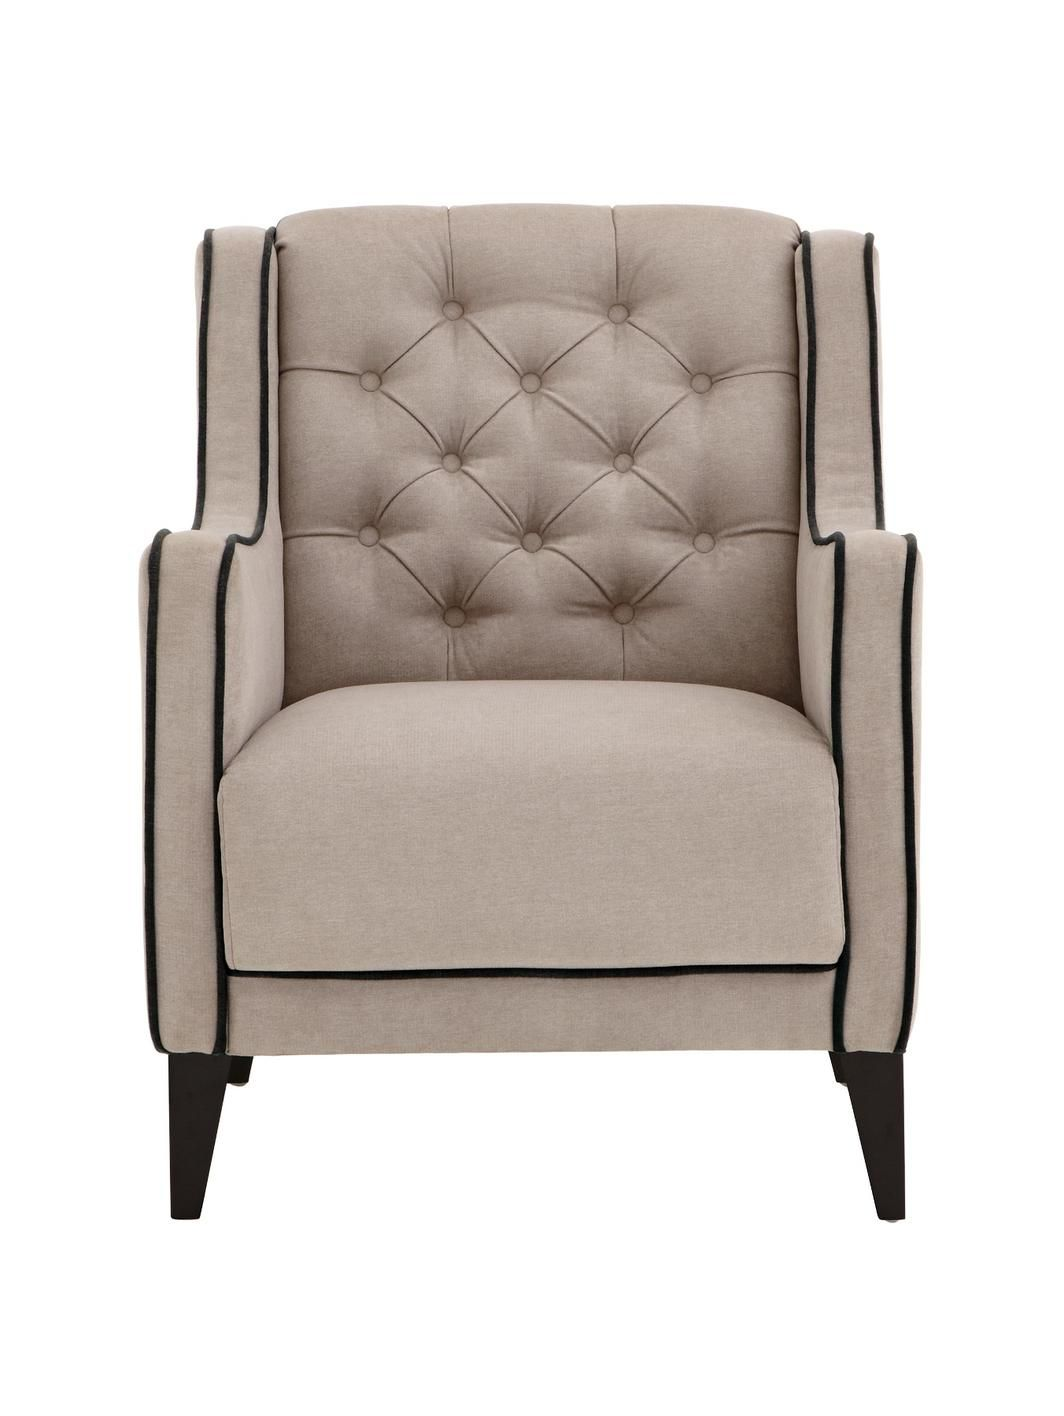 Laurence Llewelyn Bowen Portigo Fabric Armchair With Contrast PipingDrawing  Inspiration From The Extravagant Home Fashions